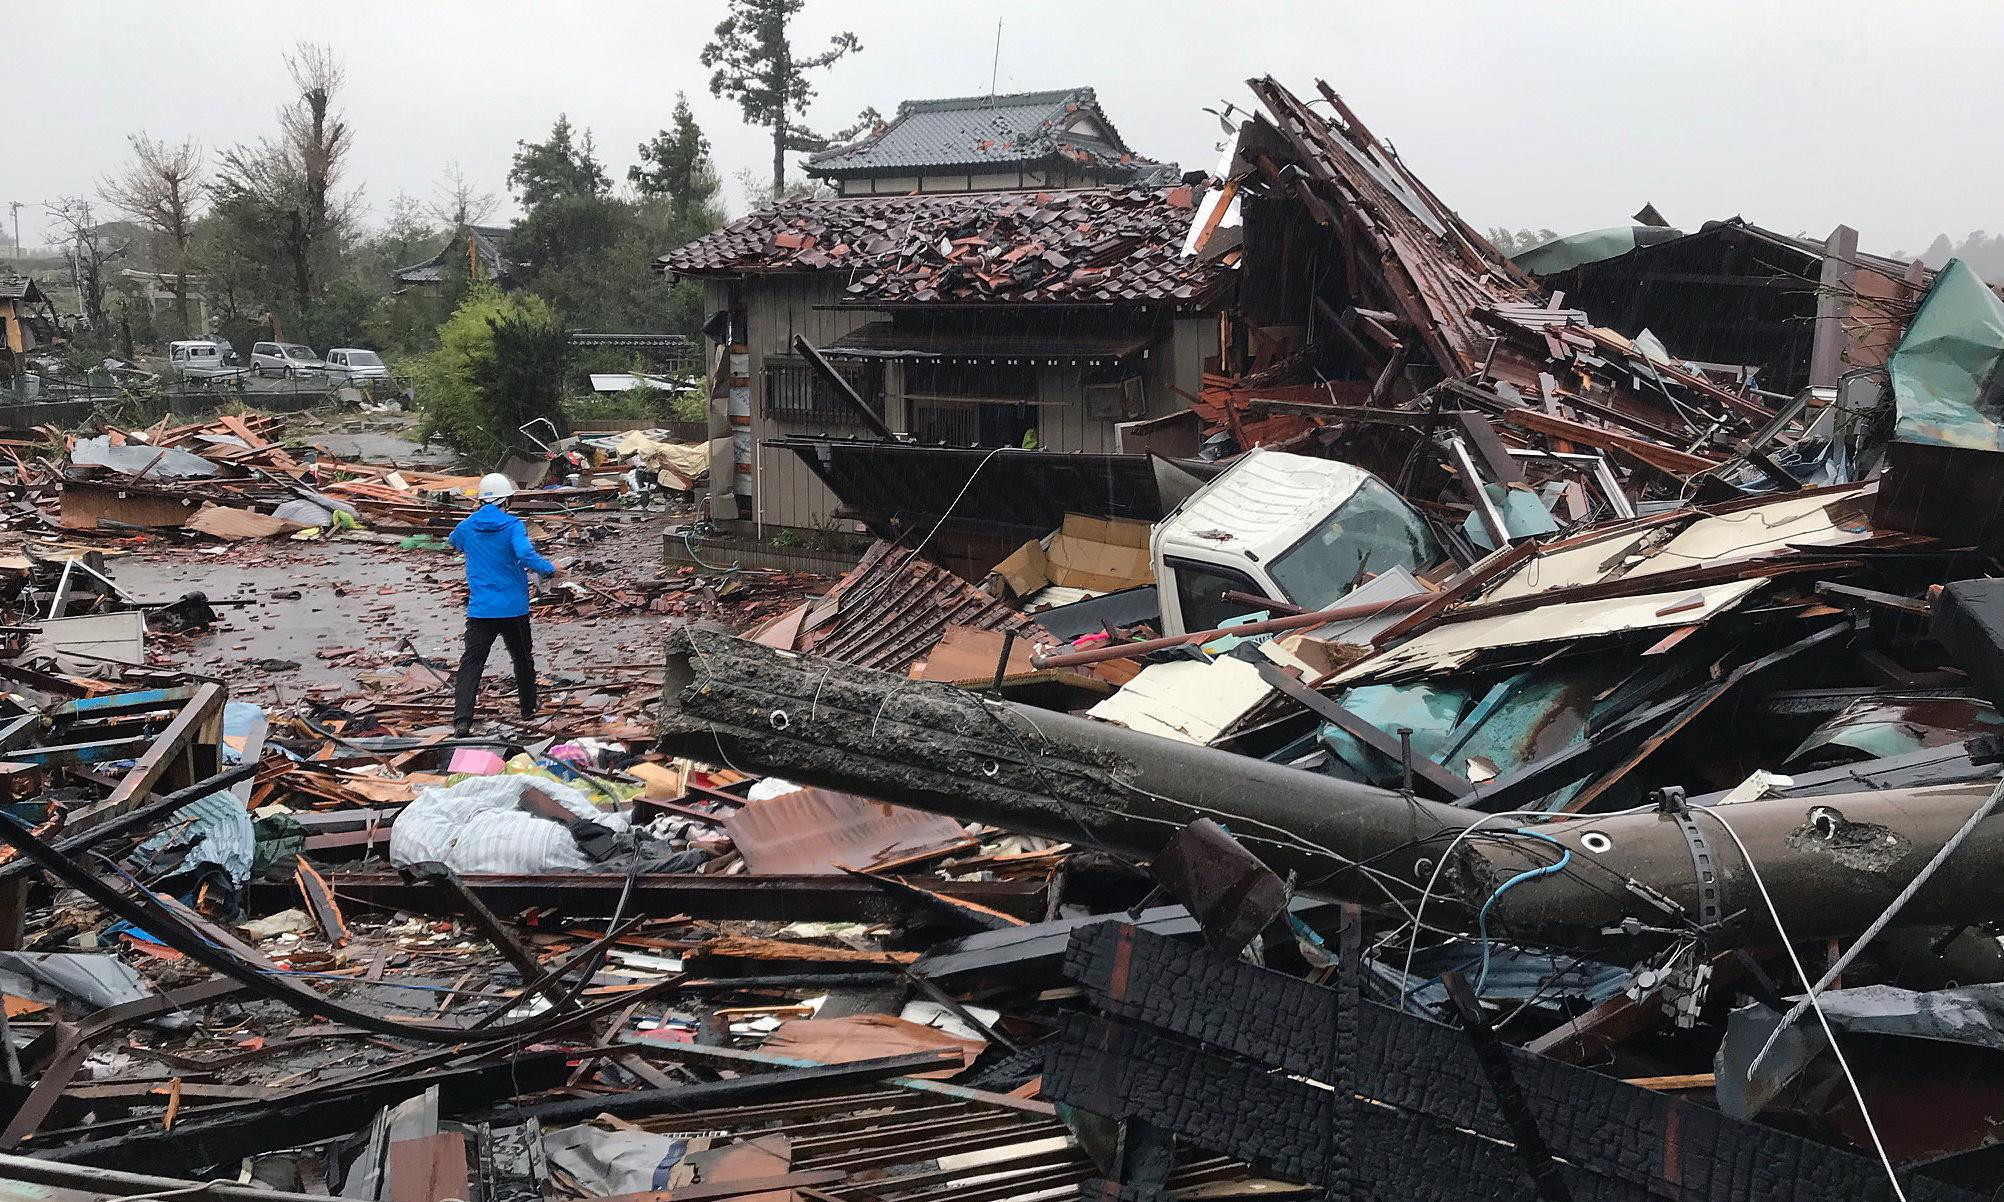 Typhoon Hagibis: death toll rises in Japan as 'worst storm in 60 years' roars through